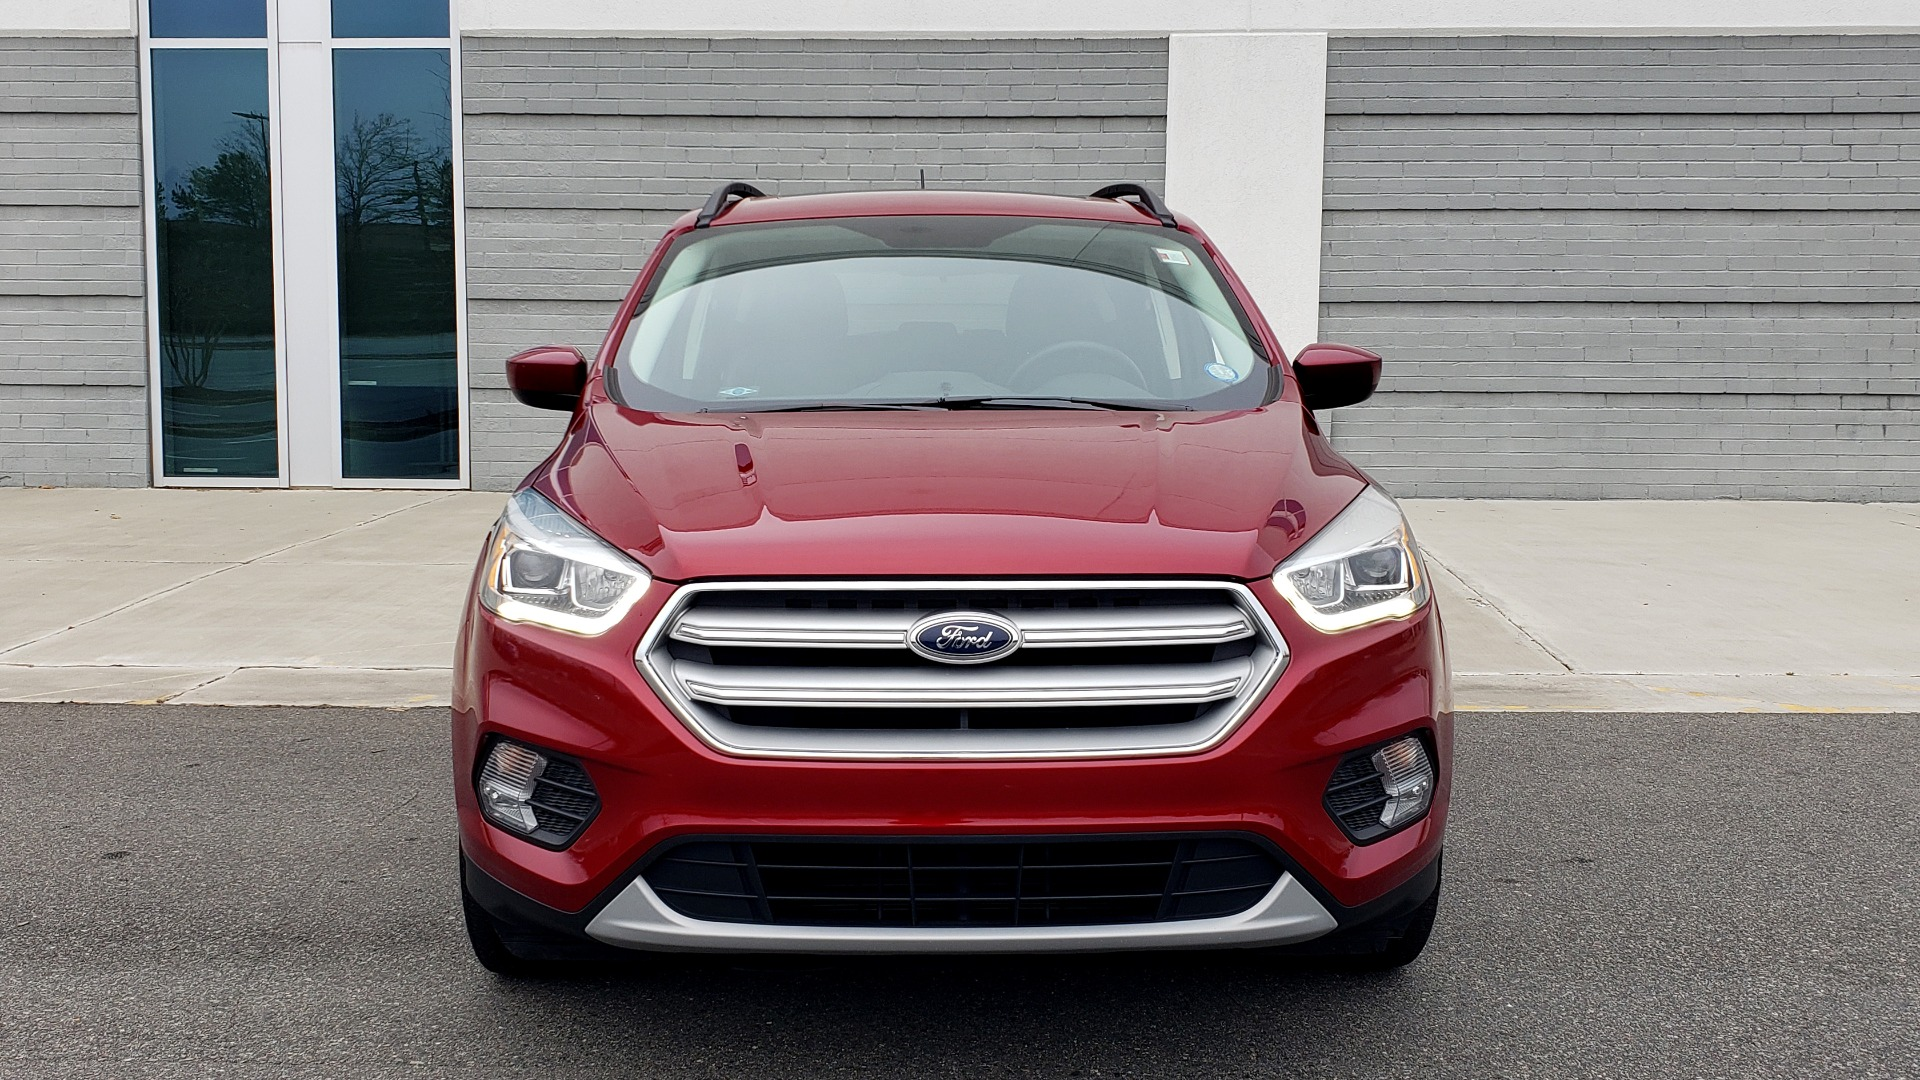 Used 2018 Ford ESCAPE SEL / FWD / 1.5L ECOBOOST / PANO-ROOF / REARVIEW for sale Sold at Formula Imports in Charlotte NC 28227 24